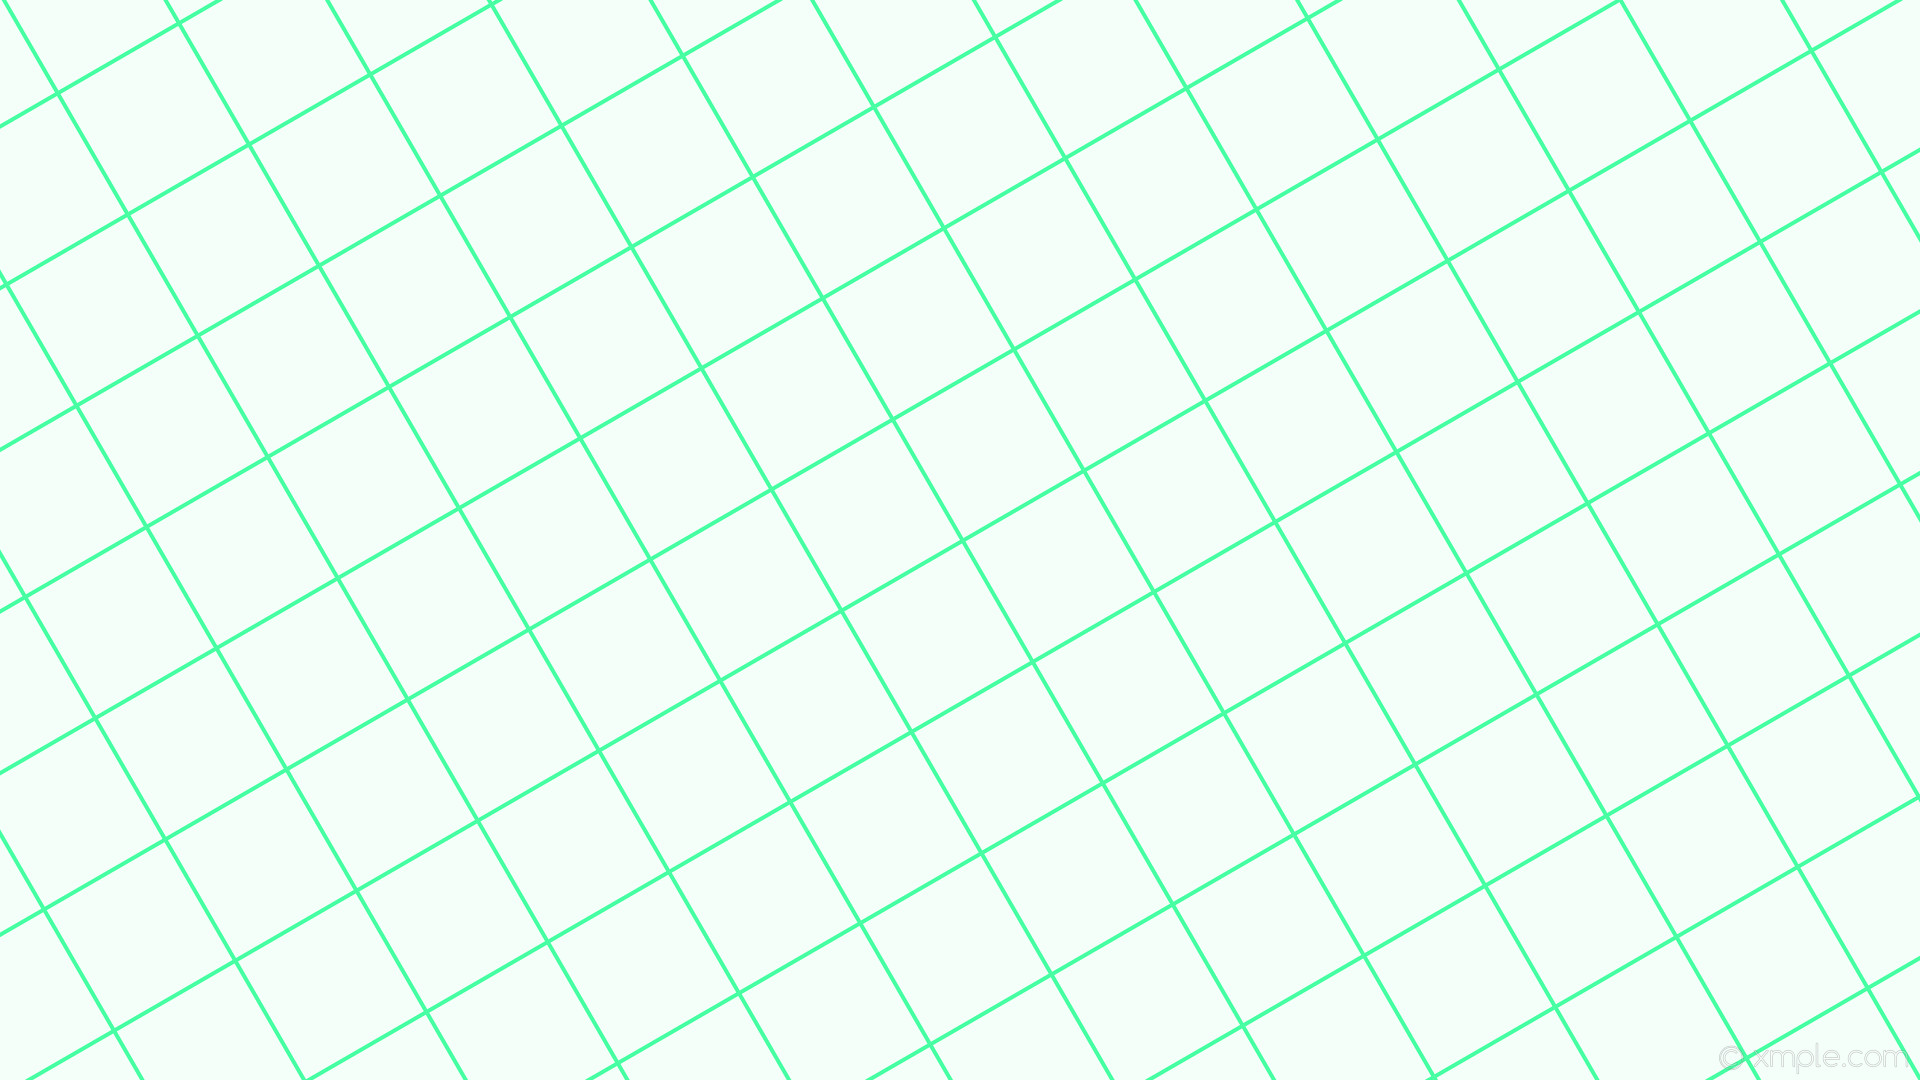 1920x1080 wallpaper grid green graph paper white mint cream spring green #f5fffa  #00ff7f 30°